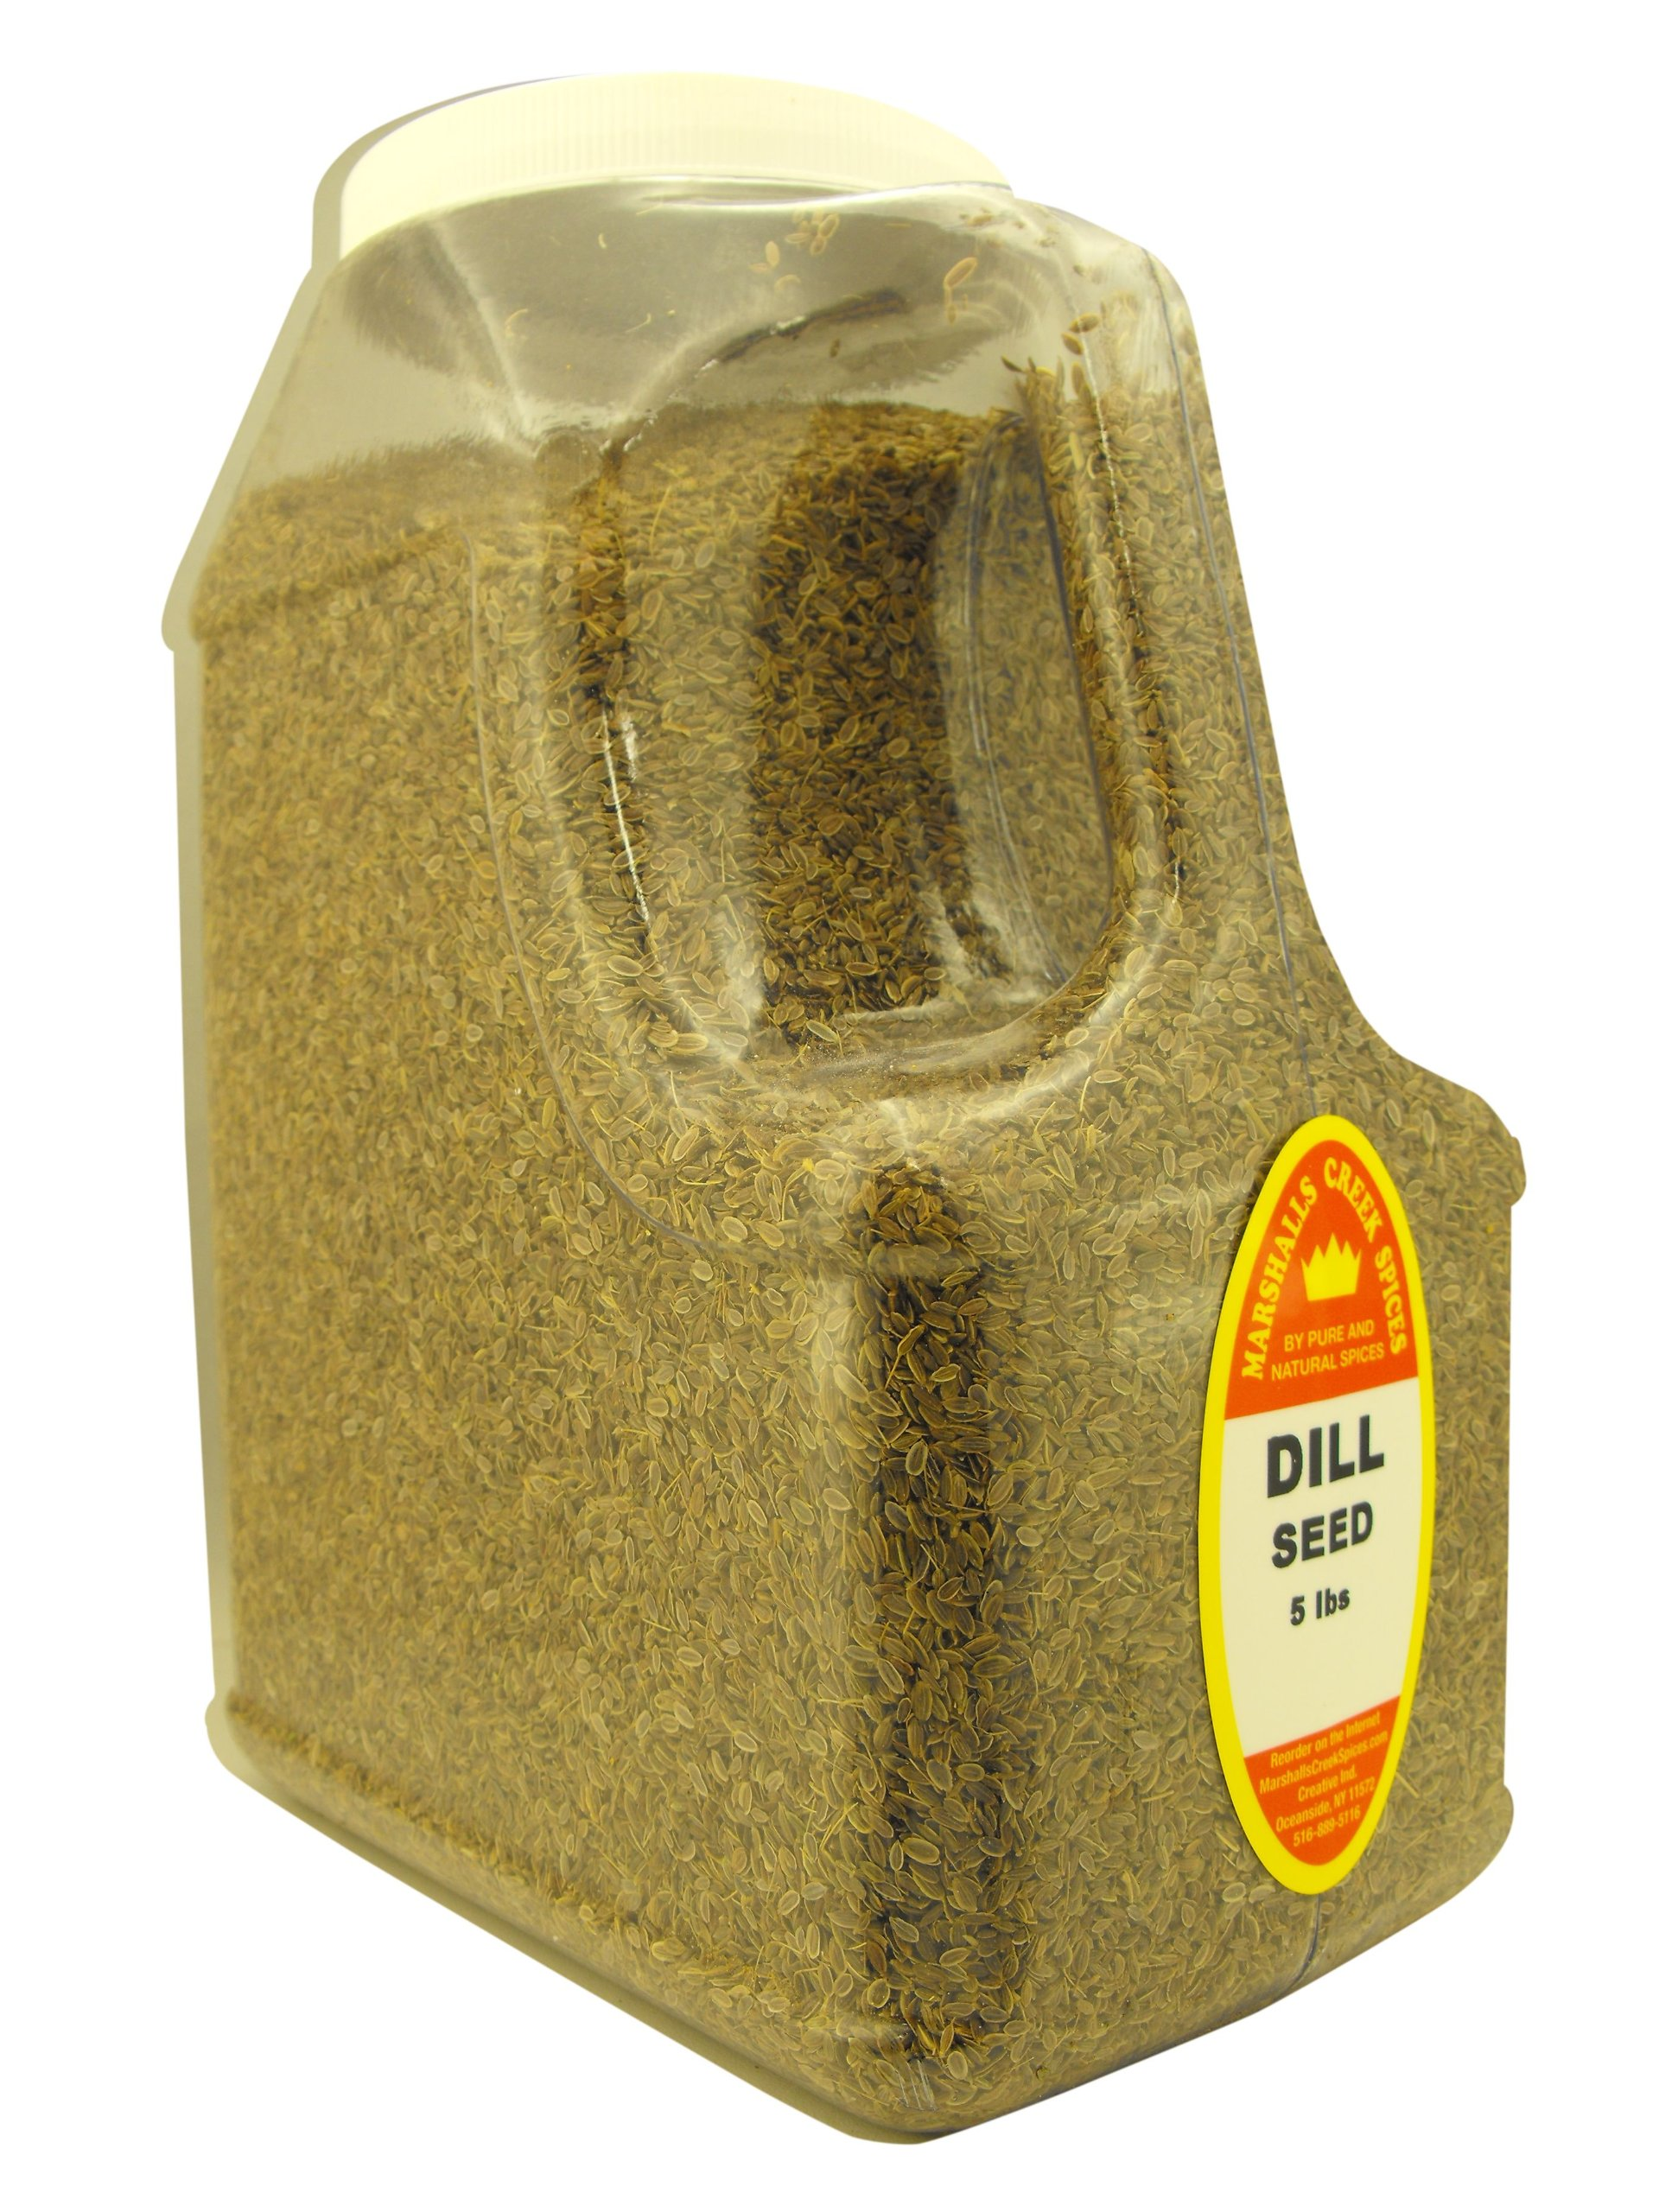 DILL SEED WHOLE 5 LB. RESTAURANT SIZE JUG